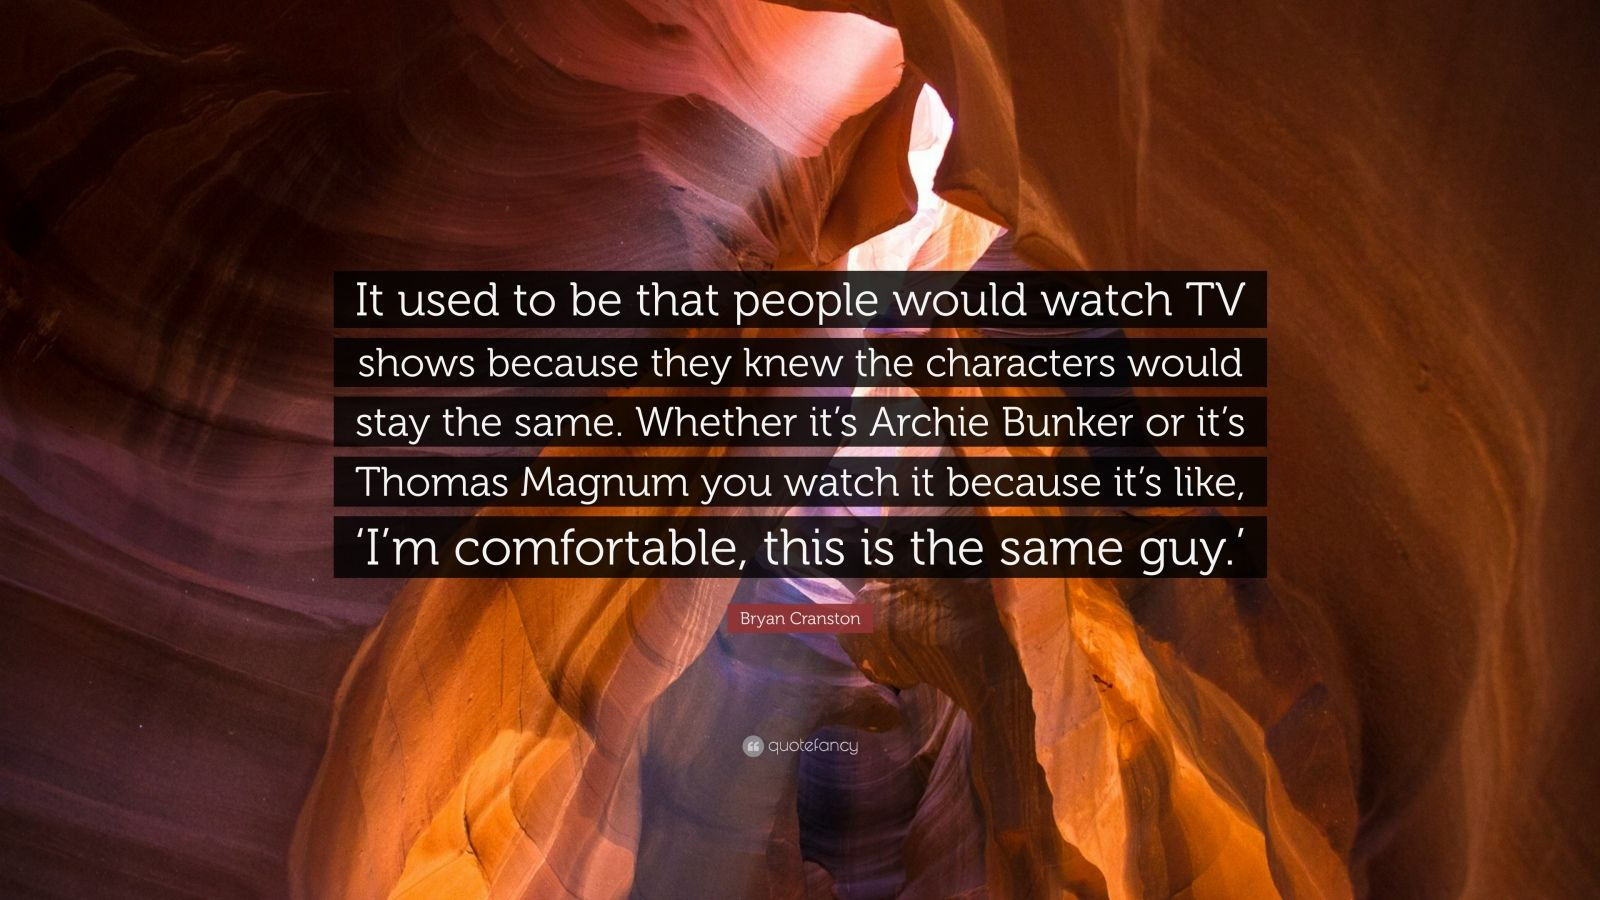 """Bryan Cranston Quote: """"It used to be that people would watch TV shows because they knew the characters would stay the same. Whether it's Archie Bunker or it's Thomas Magnum you watch it because it's like, 'I'm comfortable, this is the same guy.'"""""""